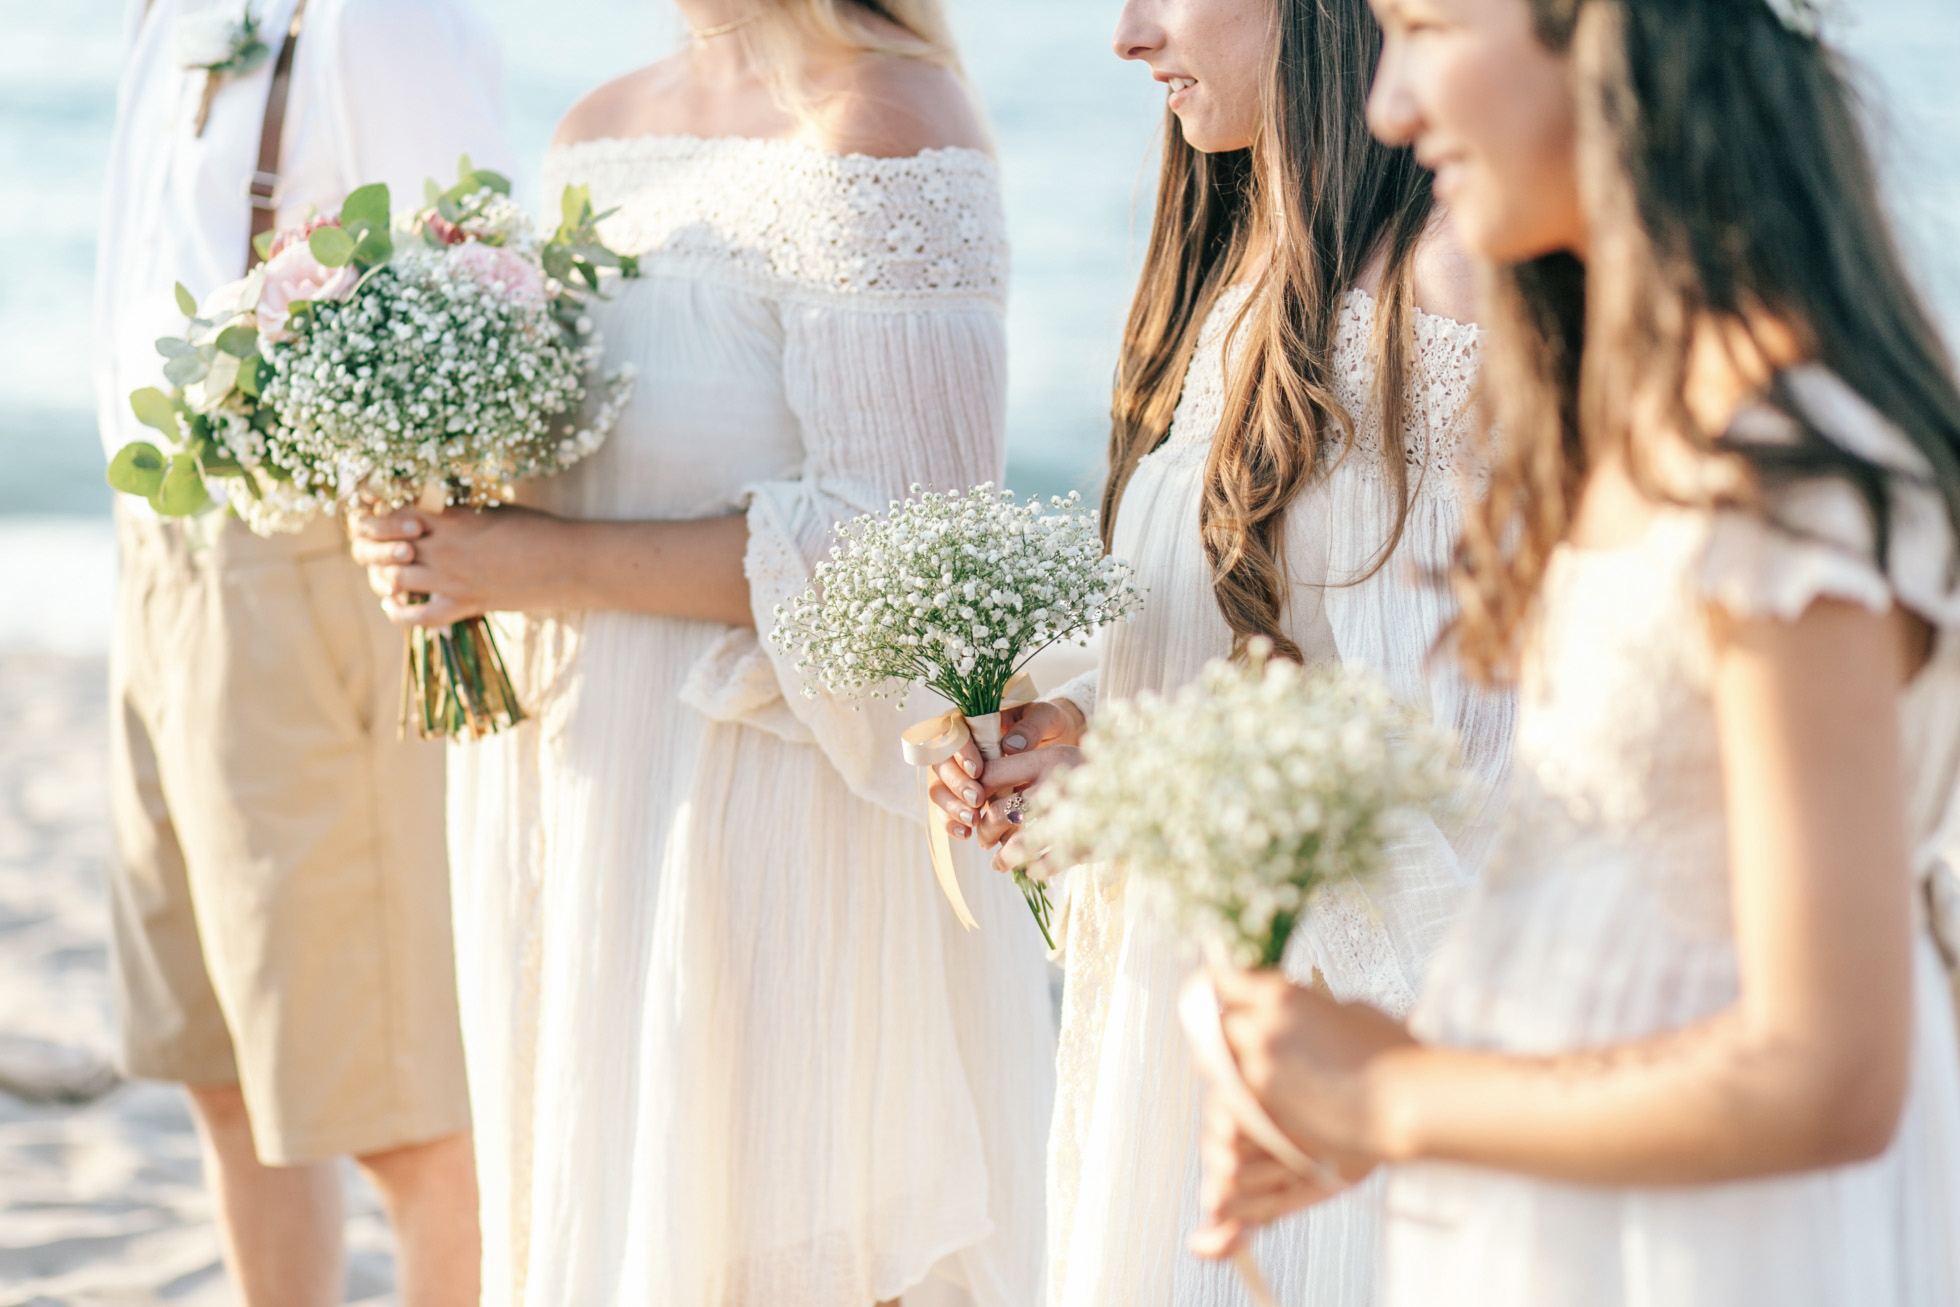 Close up photo of bridesmaids standing on the beach and holding their delicate understated bouquets of seasonal flowers.